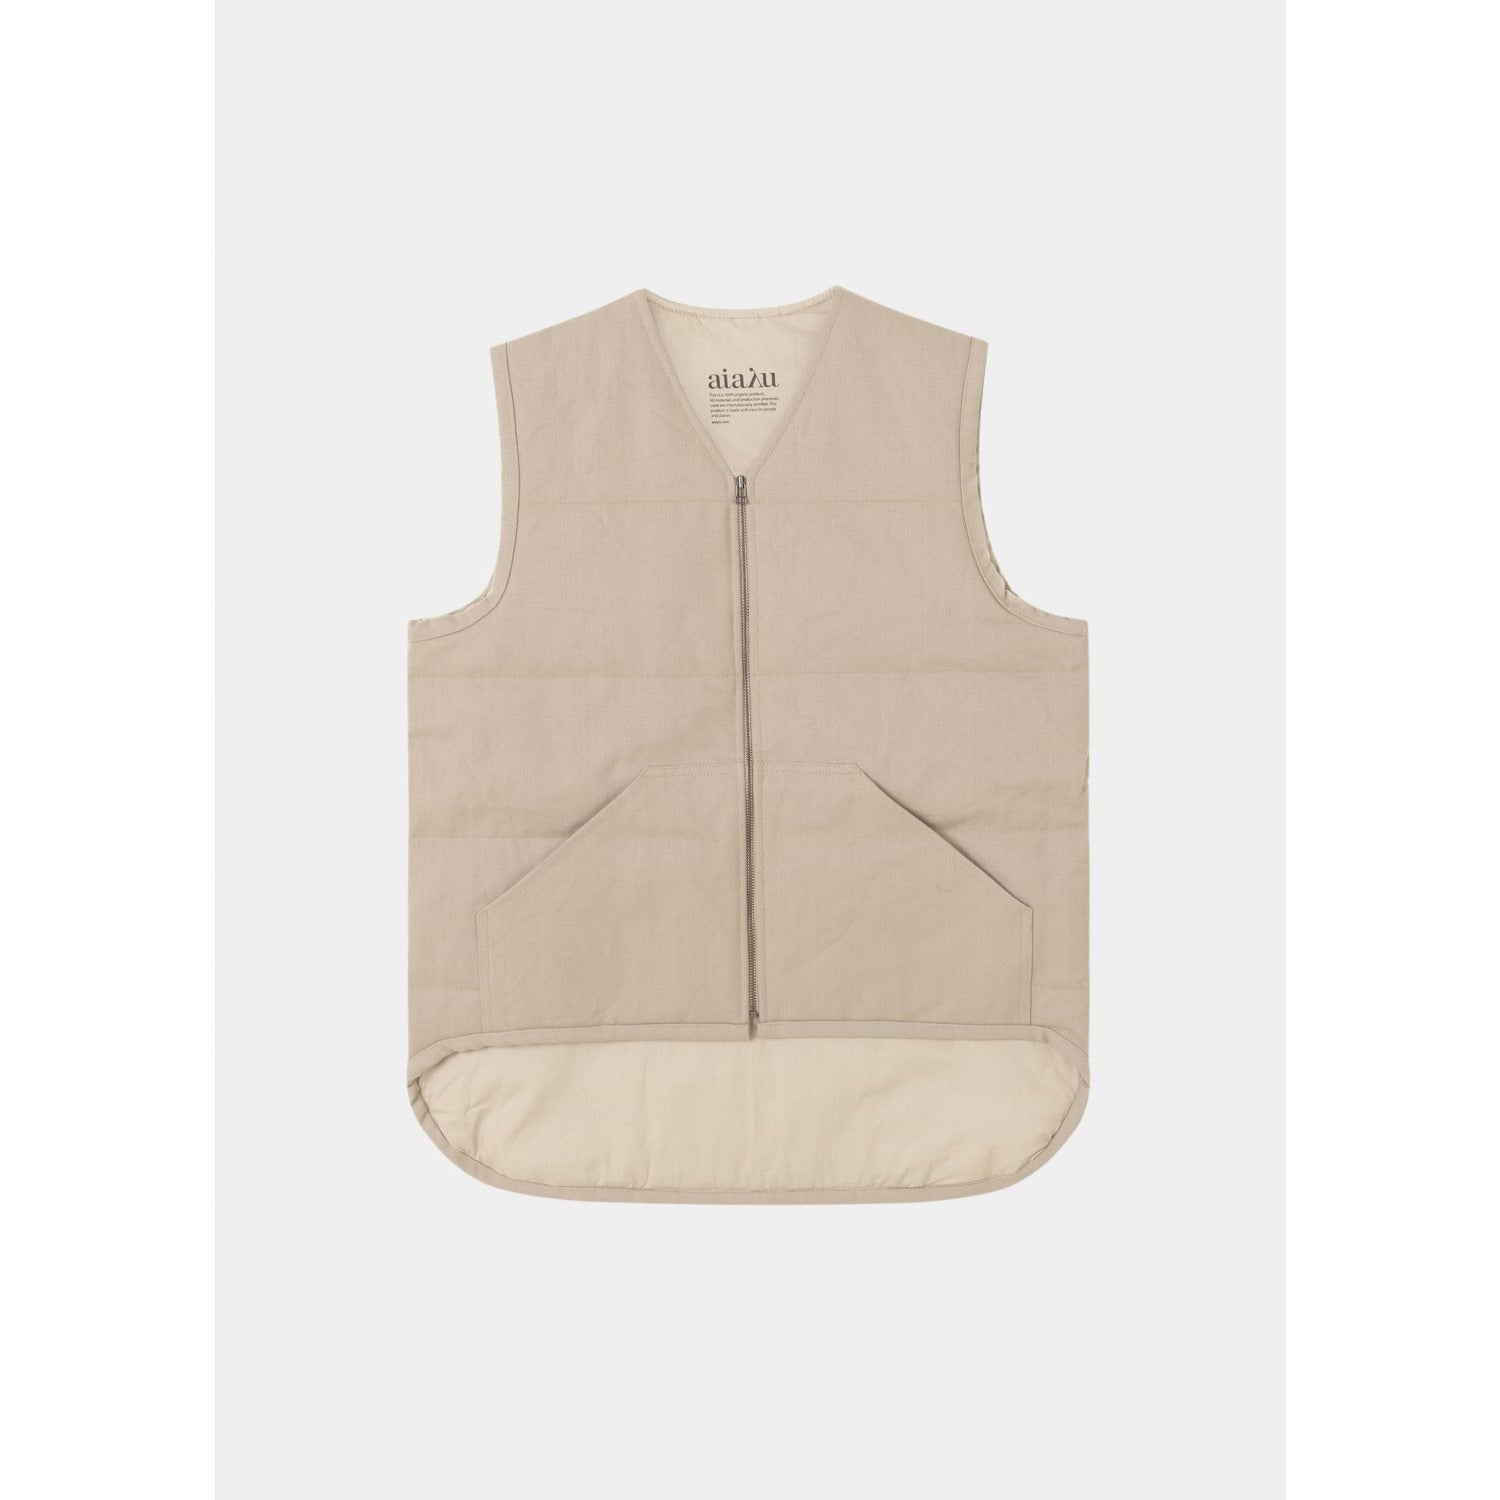 beige zip up vest by designer aiayu